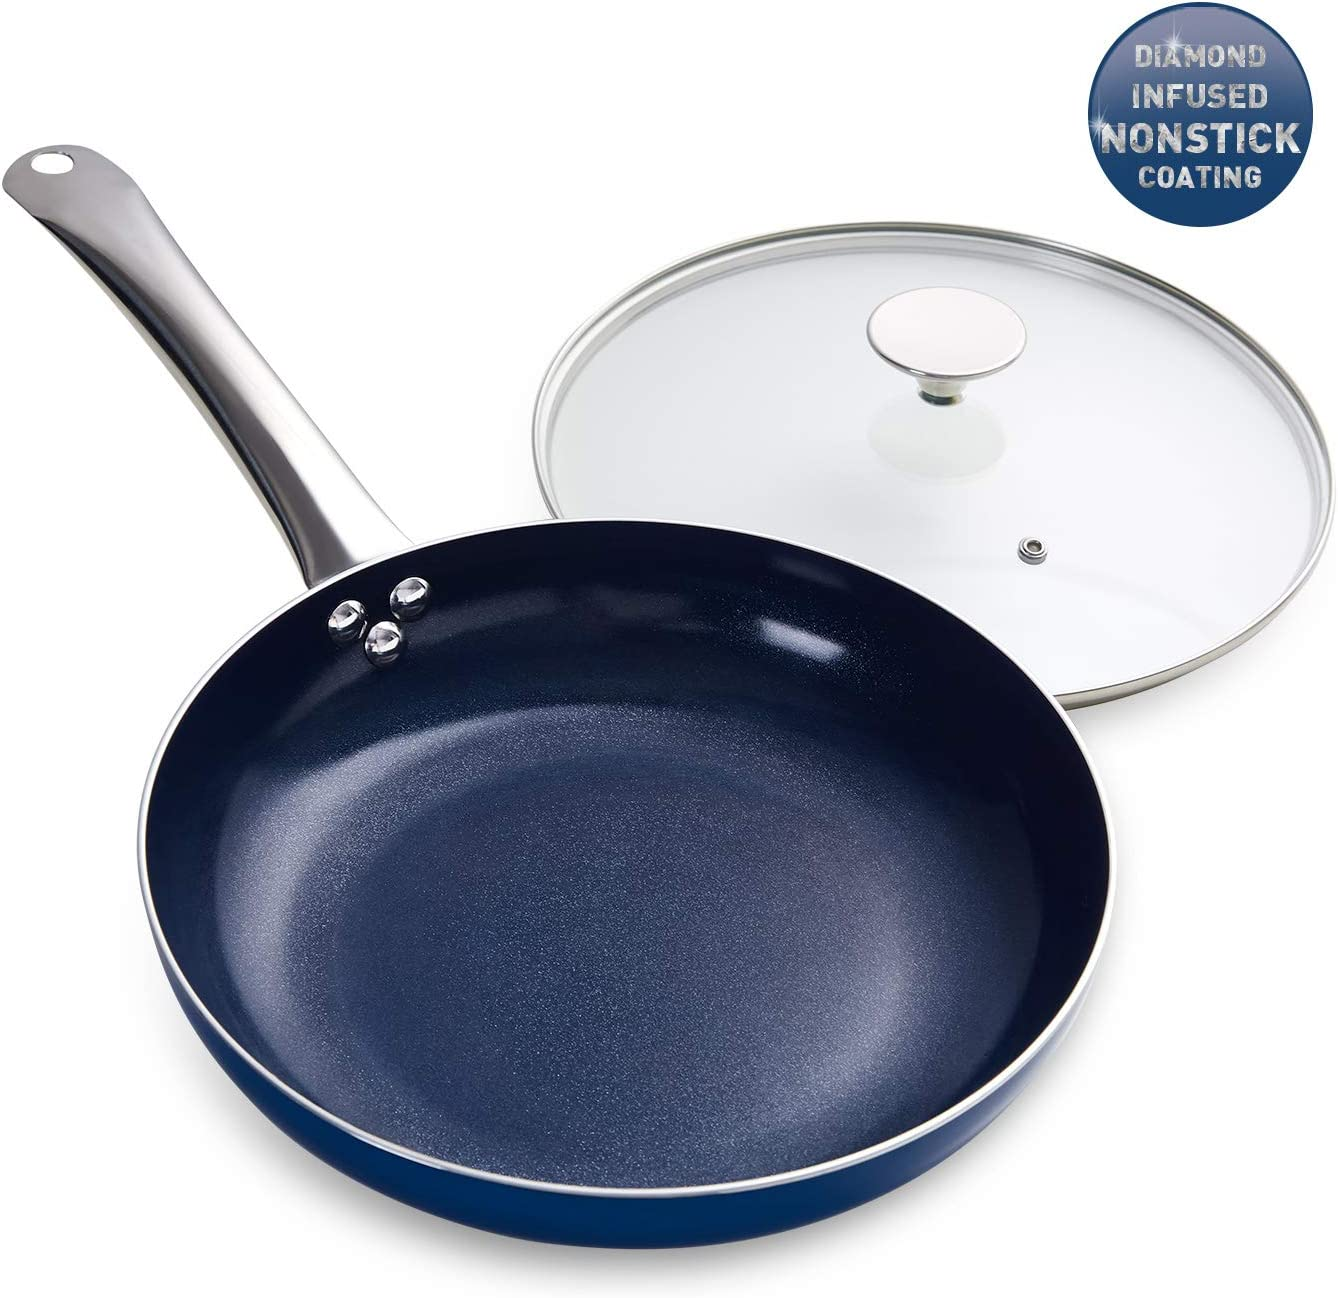 MICHELANGELO 10 Inch Frying Pan with Lid, Blue Frying Pan with Nonstick Diamond Infused Coating, Nonstick Frying Pans, Diamond Fry Pan Blue, Nonstick Skillet 10 Inch - Induction Compatible